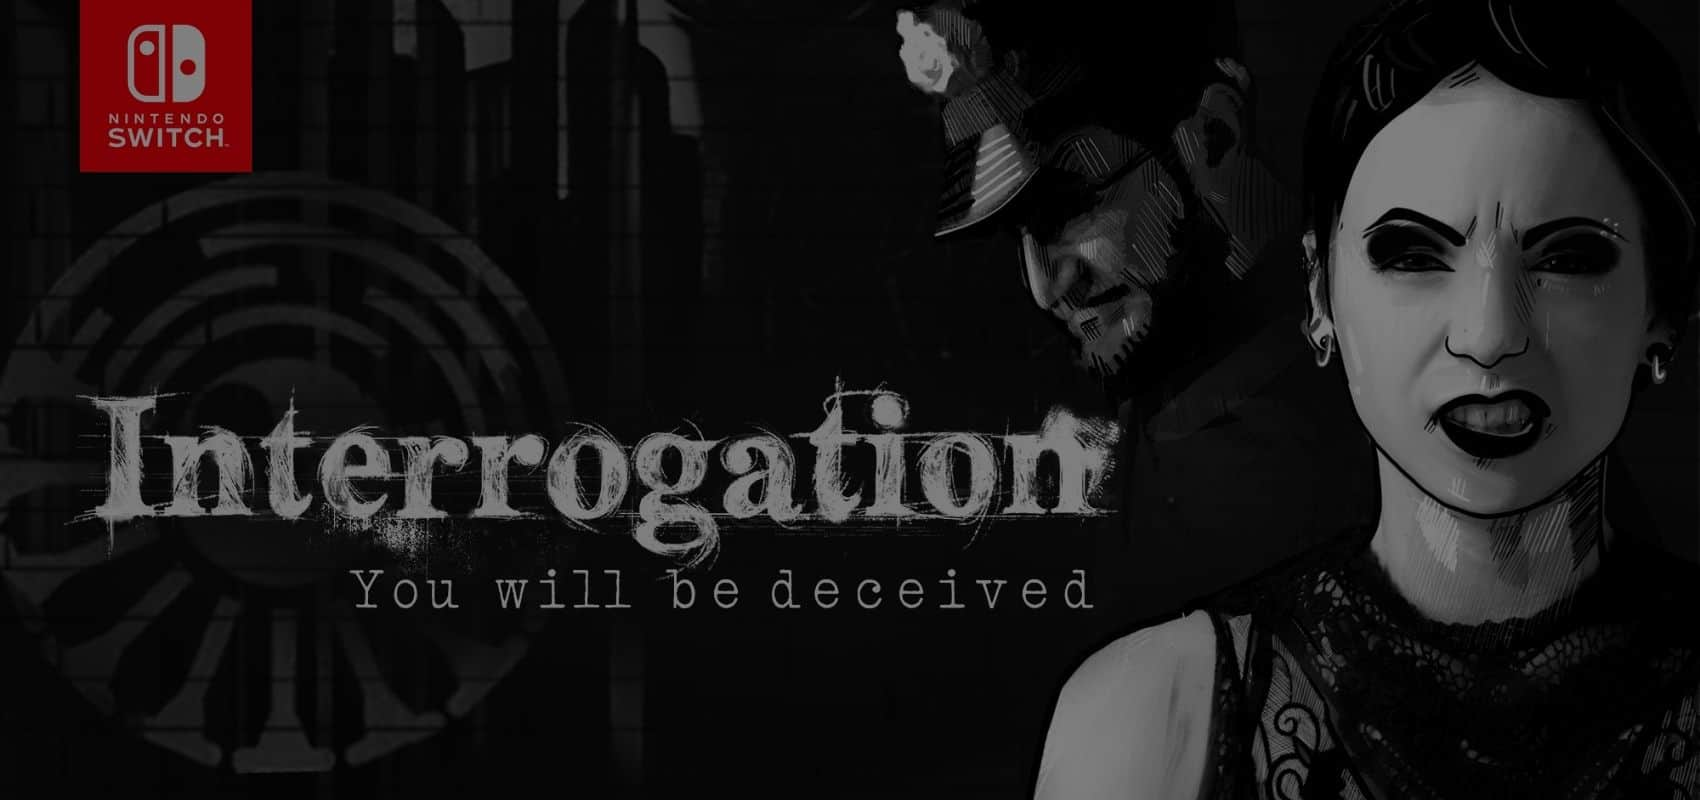 Noir thriller 'Interrogation: You will be deceived' now testing players' wits and morals on Nintendo Switch